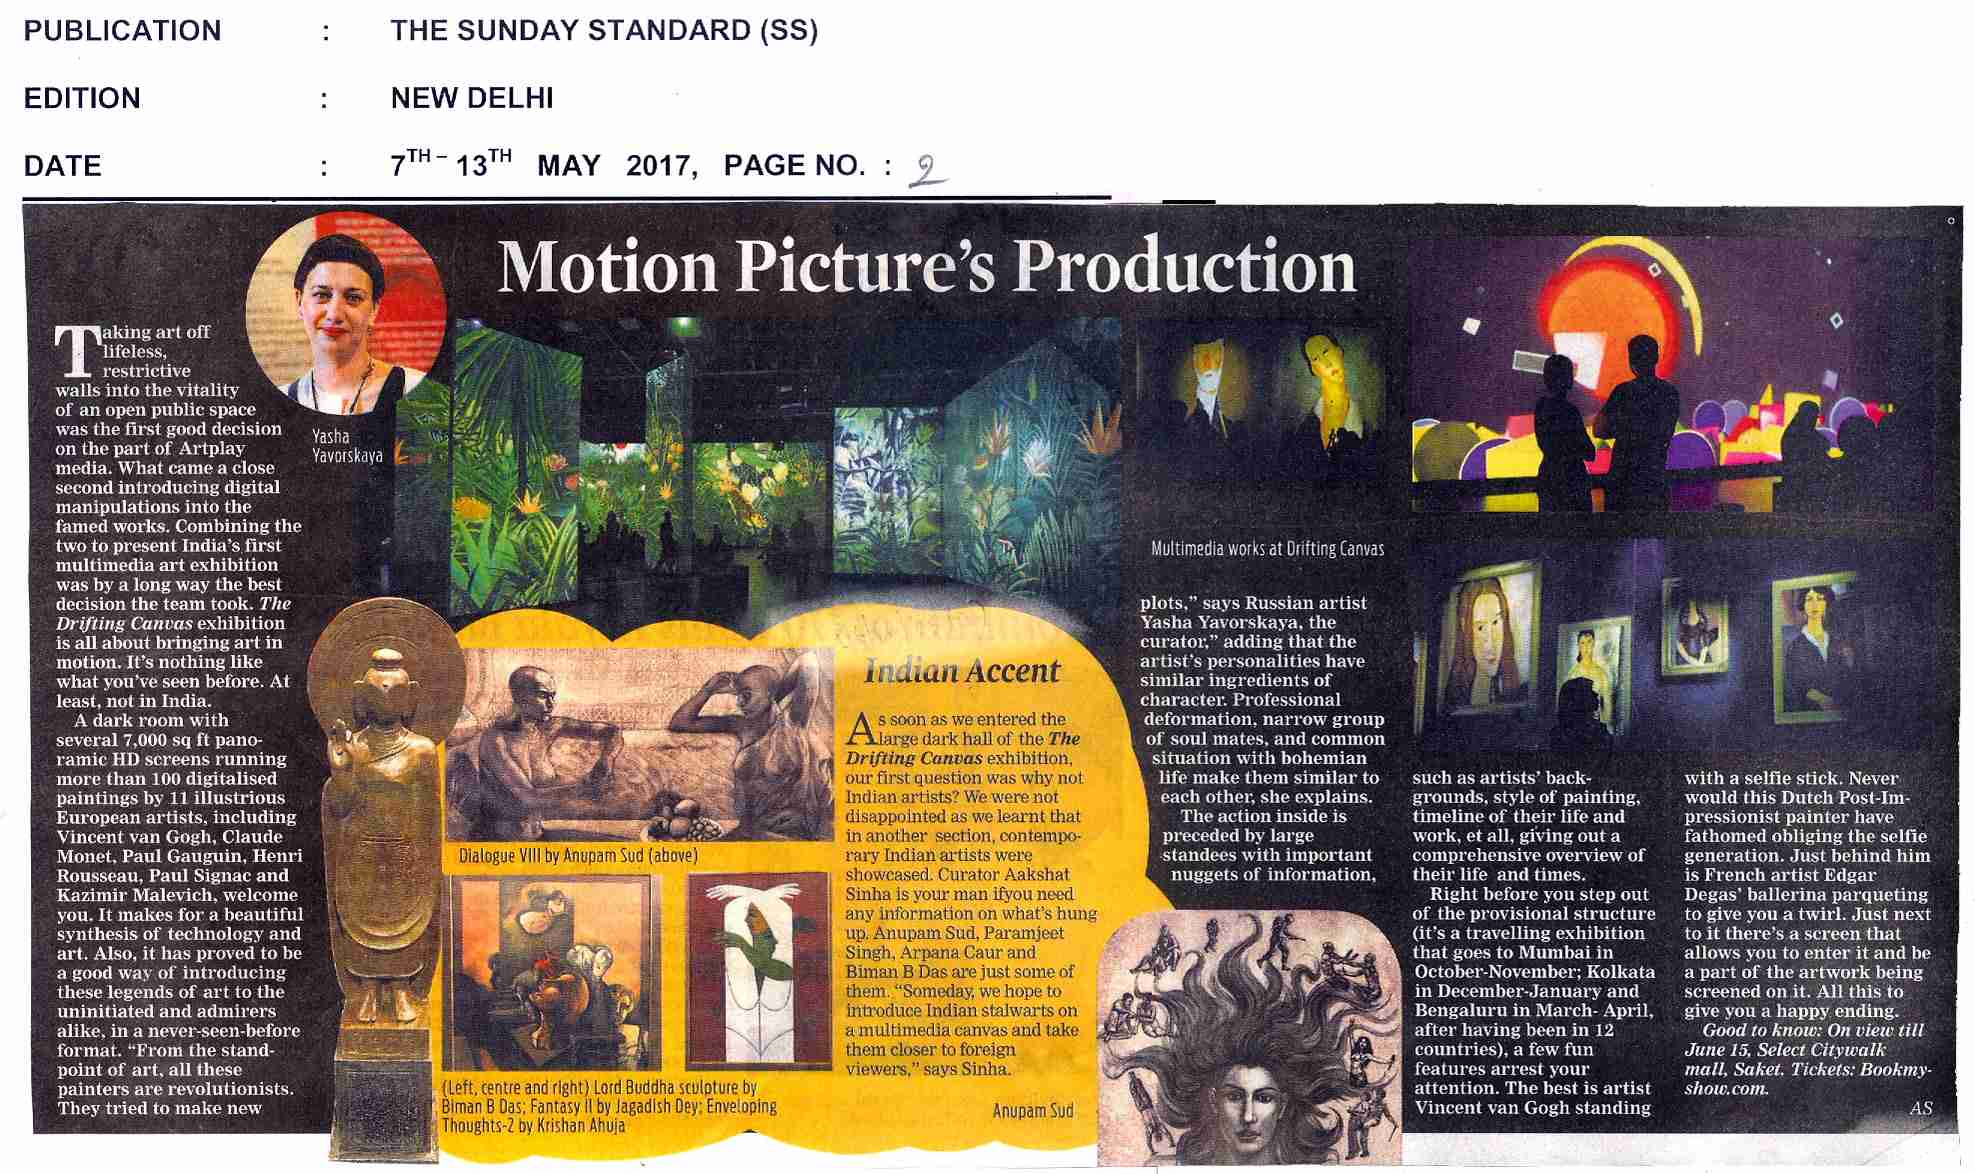 Motion Picture's Production